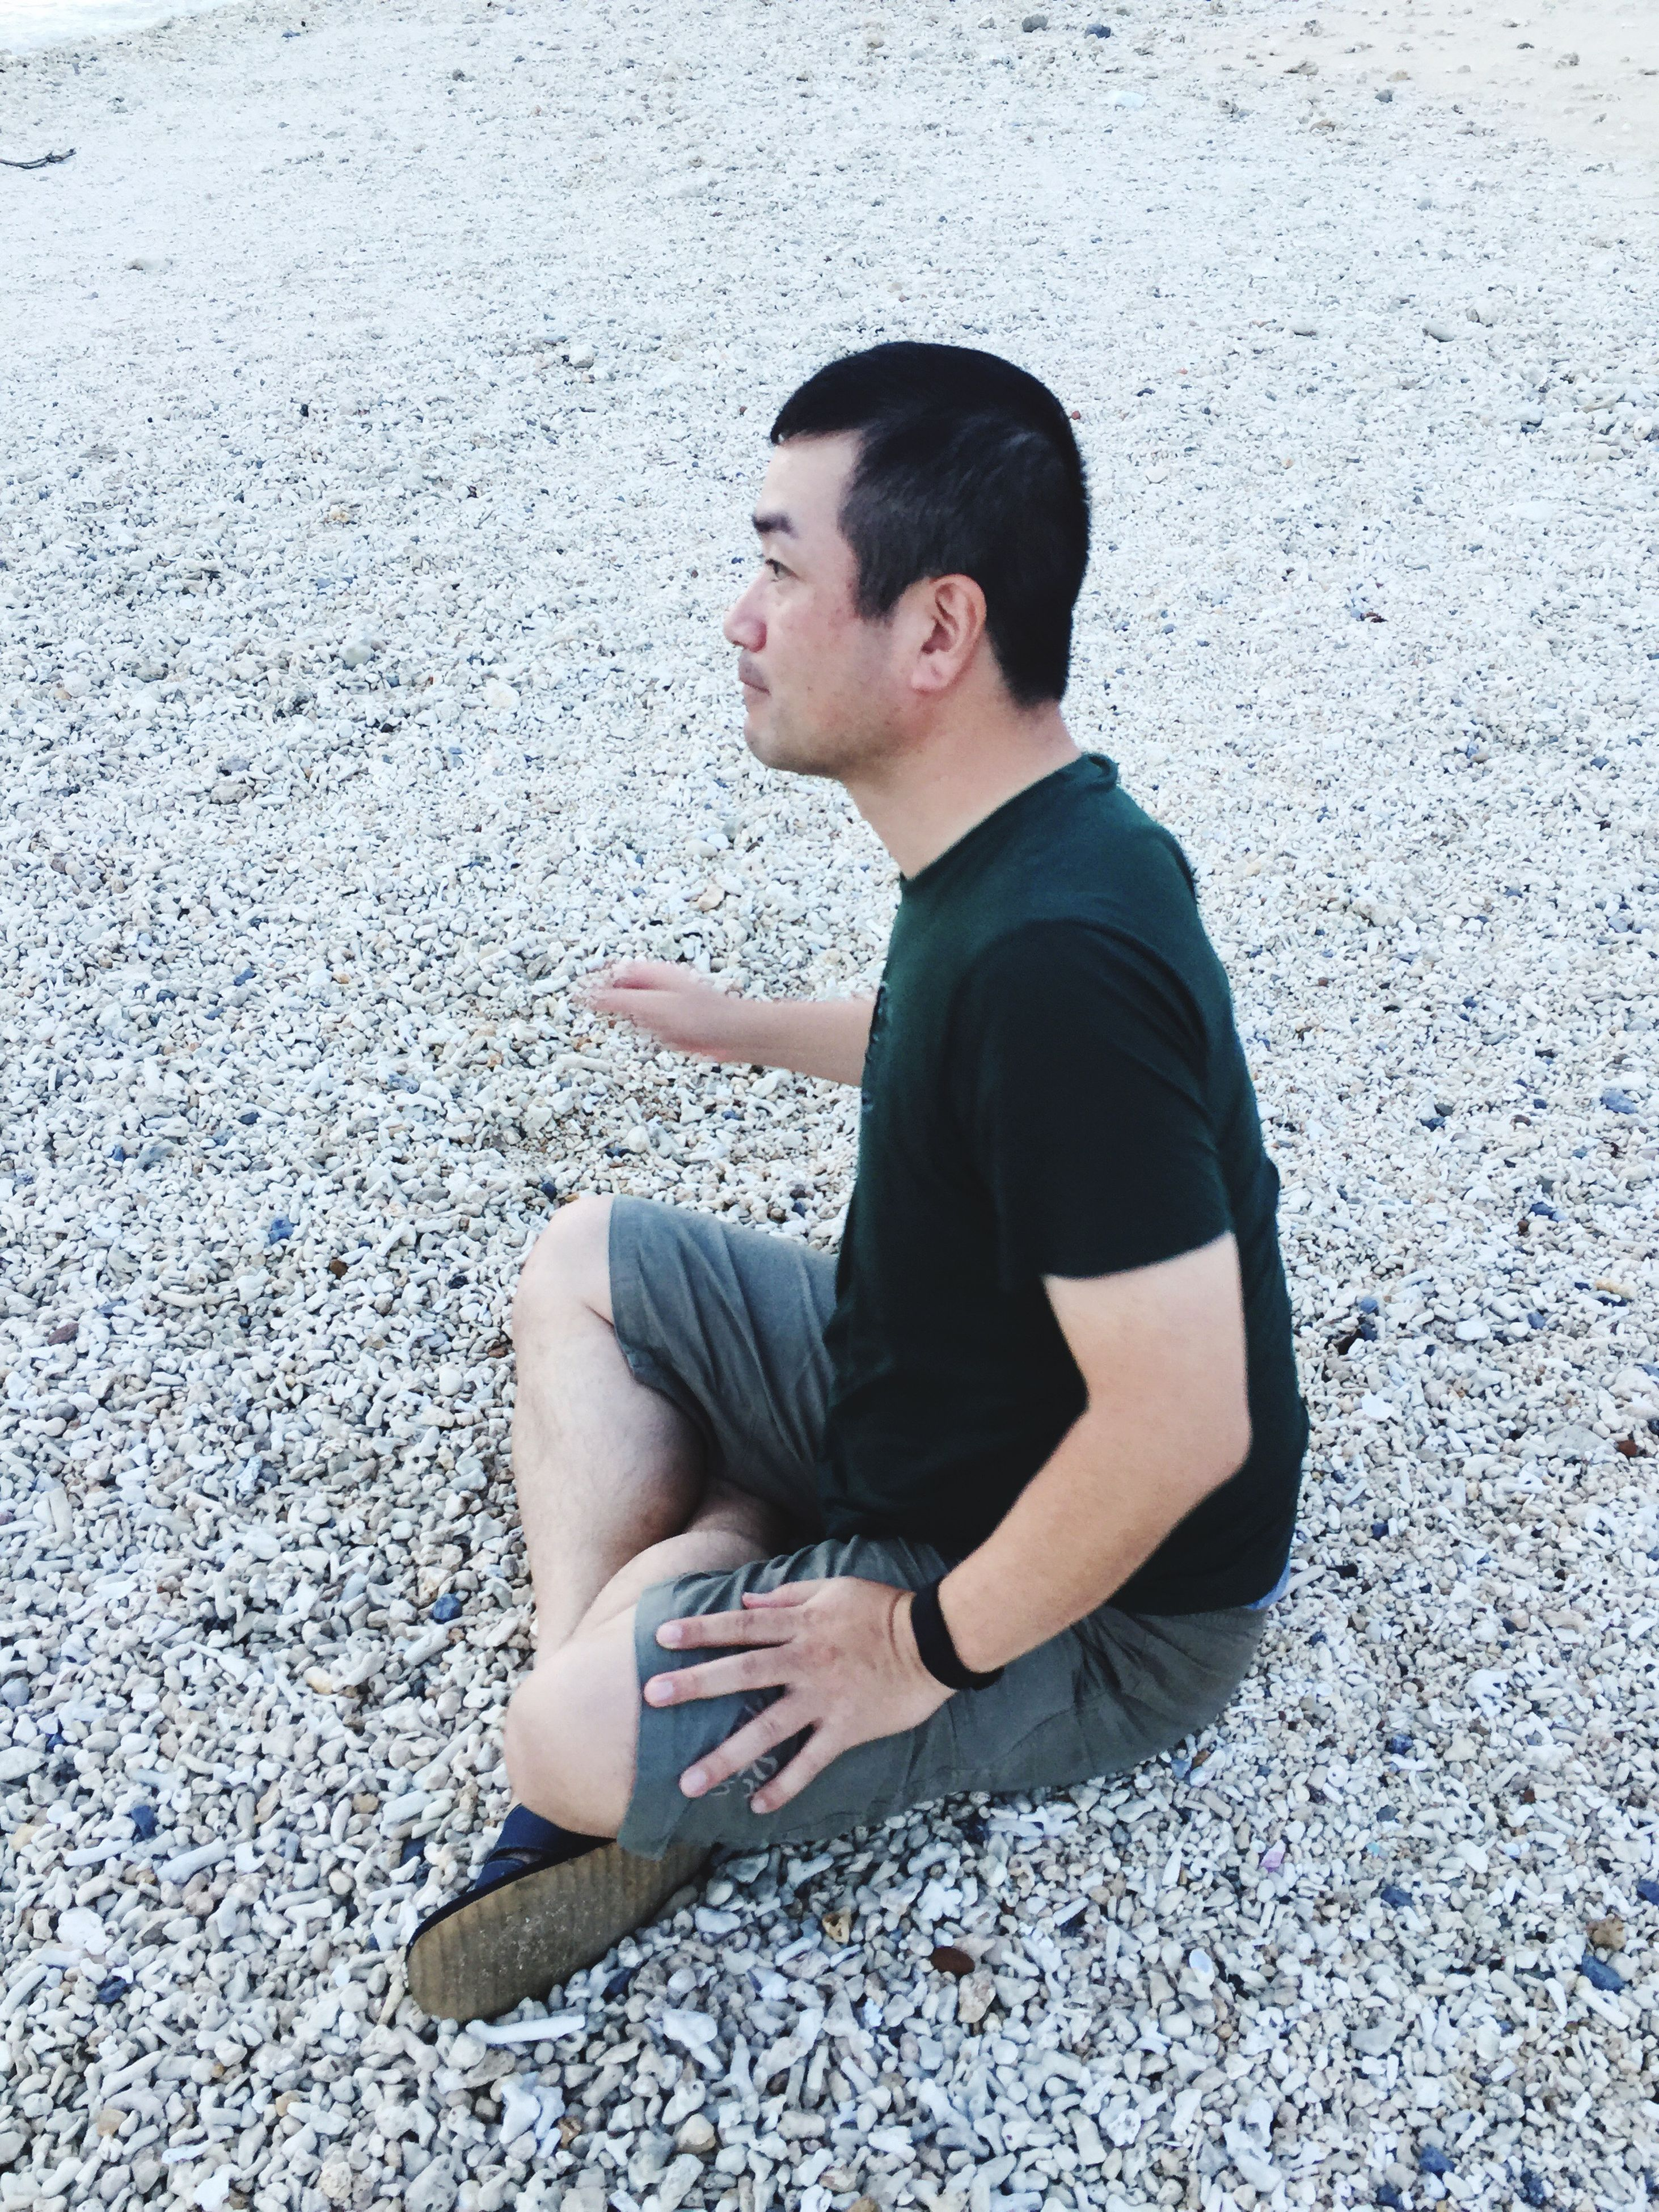 young adult, sitting, full length, casual clothing, person, outdoors, contemplation, day, looking, handsome